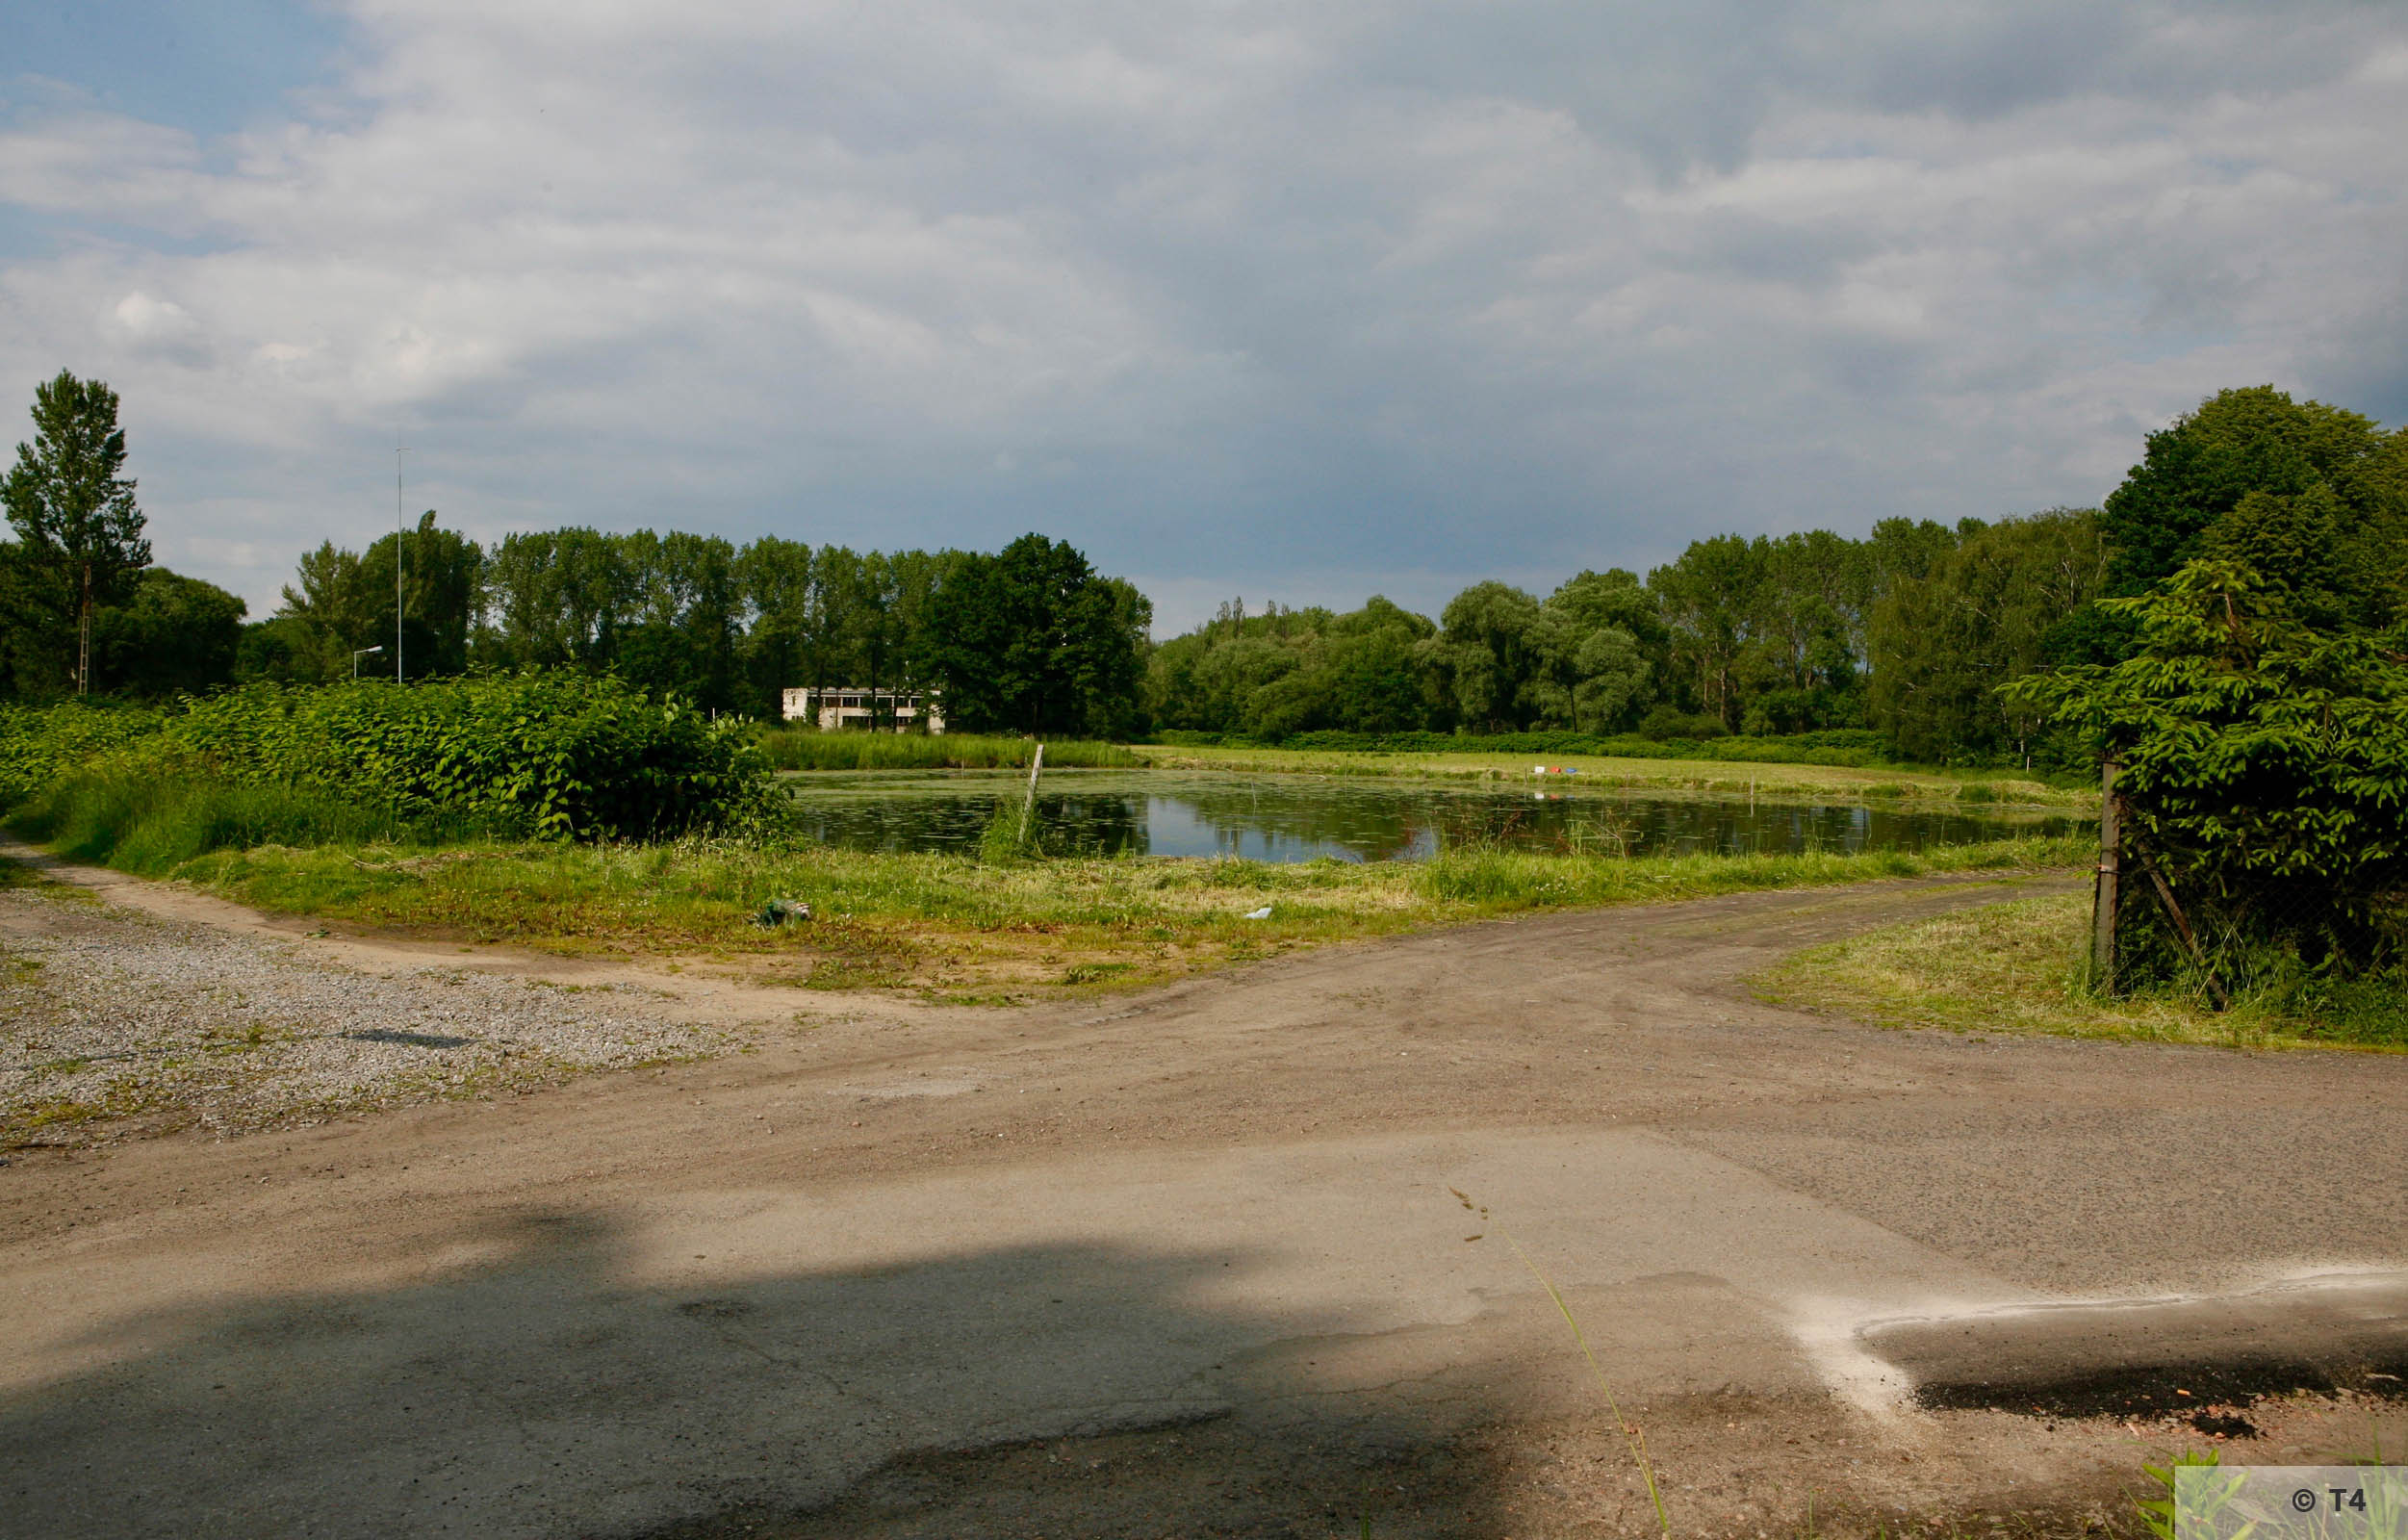 Pond behind the former sub camp and building on the site of the former SS barracks. 2006 T4 6721